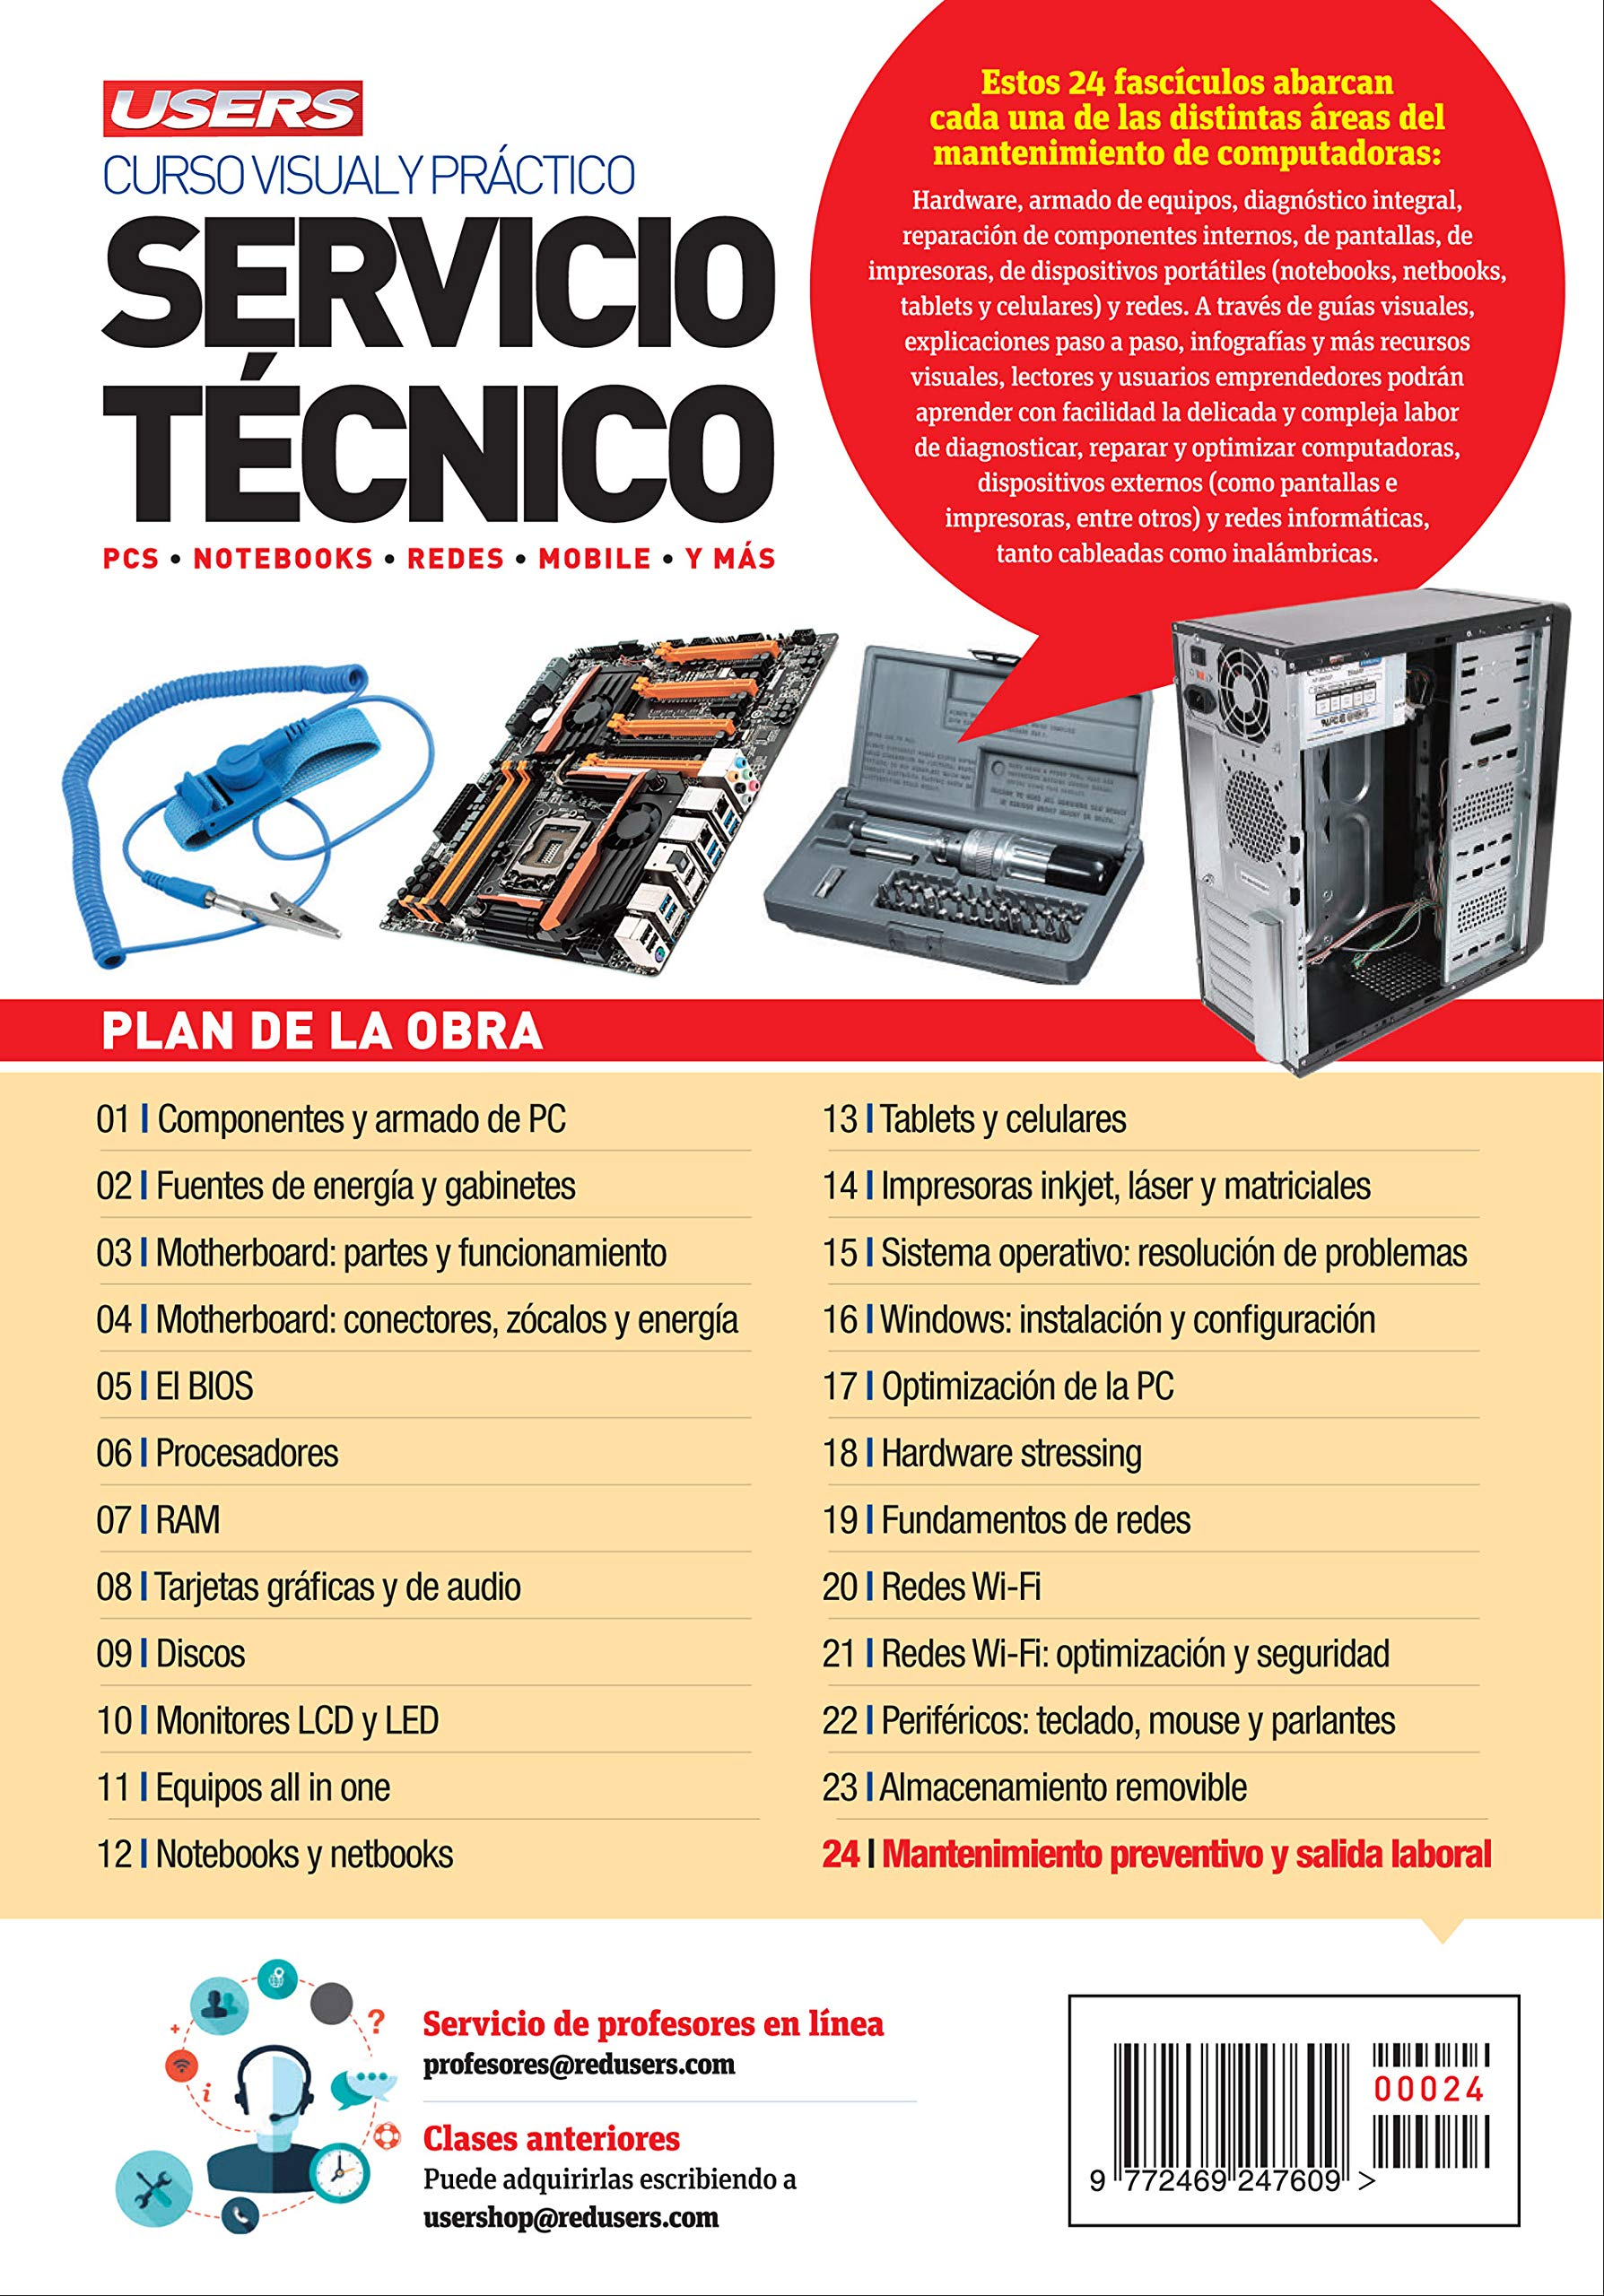 Servicio Técnico - PCs, Notebooks, Redes, Mobile y màs (Spanish Edition): USERS Staff, USERS, Español;Espanol;Espaniol: 9789879744185: Amazon.com: Books